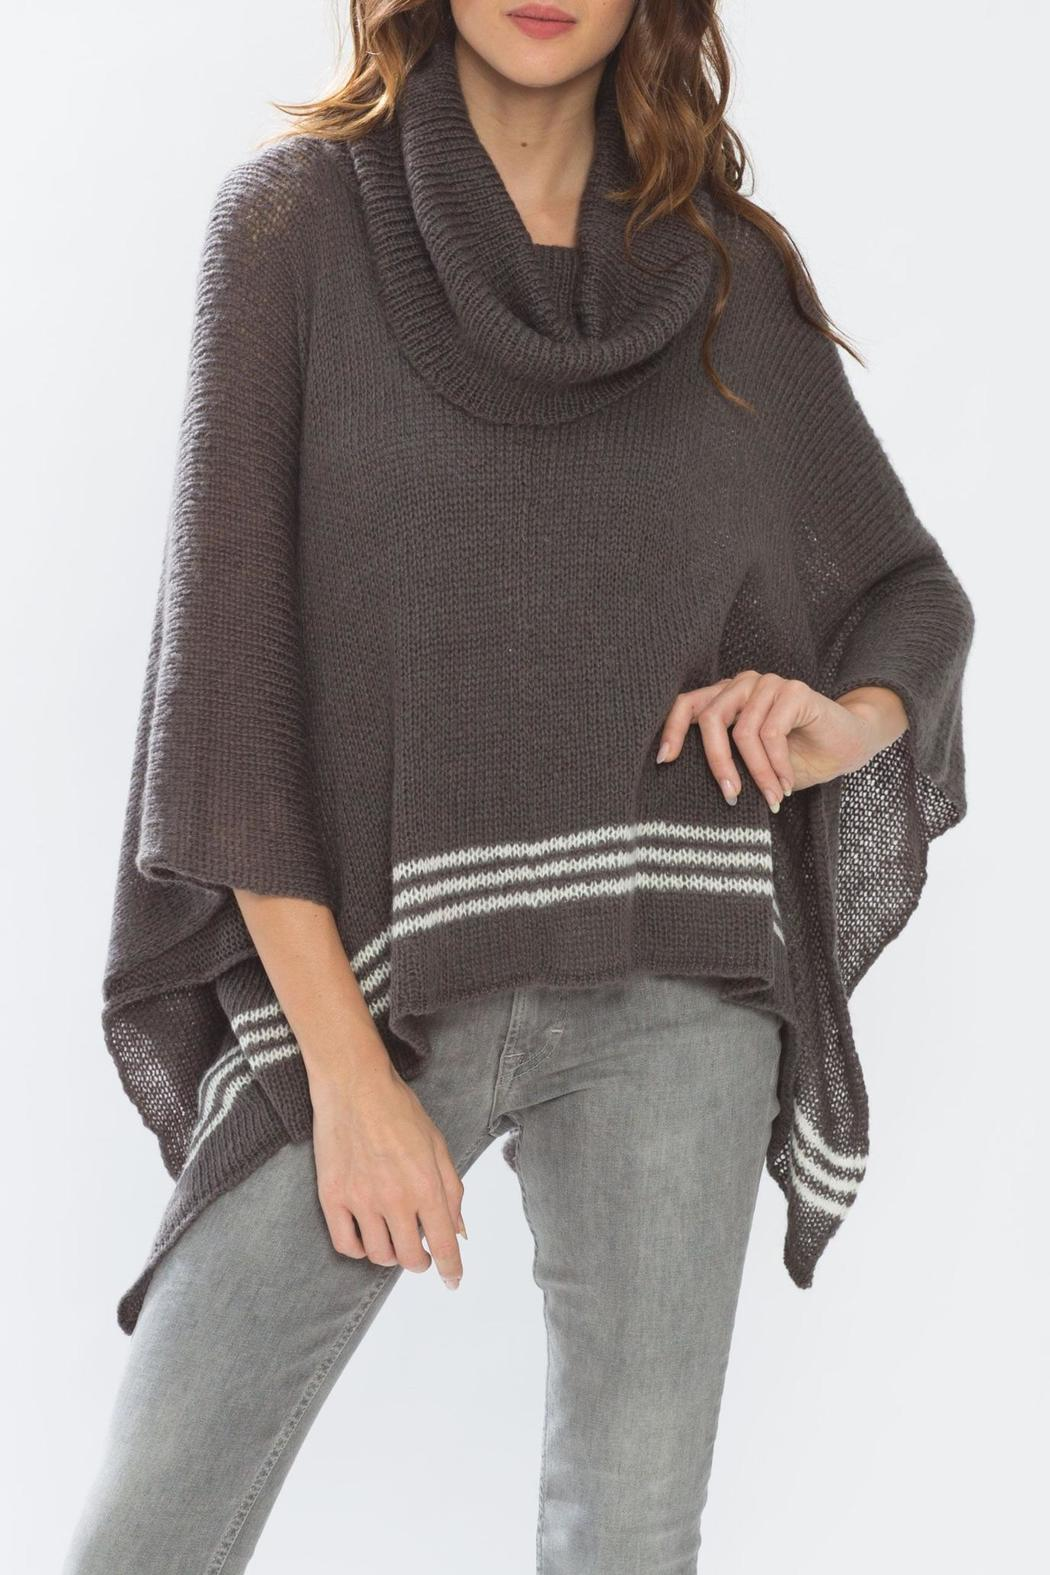 Wooden Ships Cowl Neck Poncho From Massachusetts By Sundance